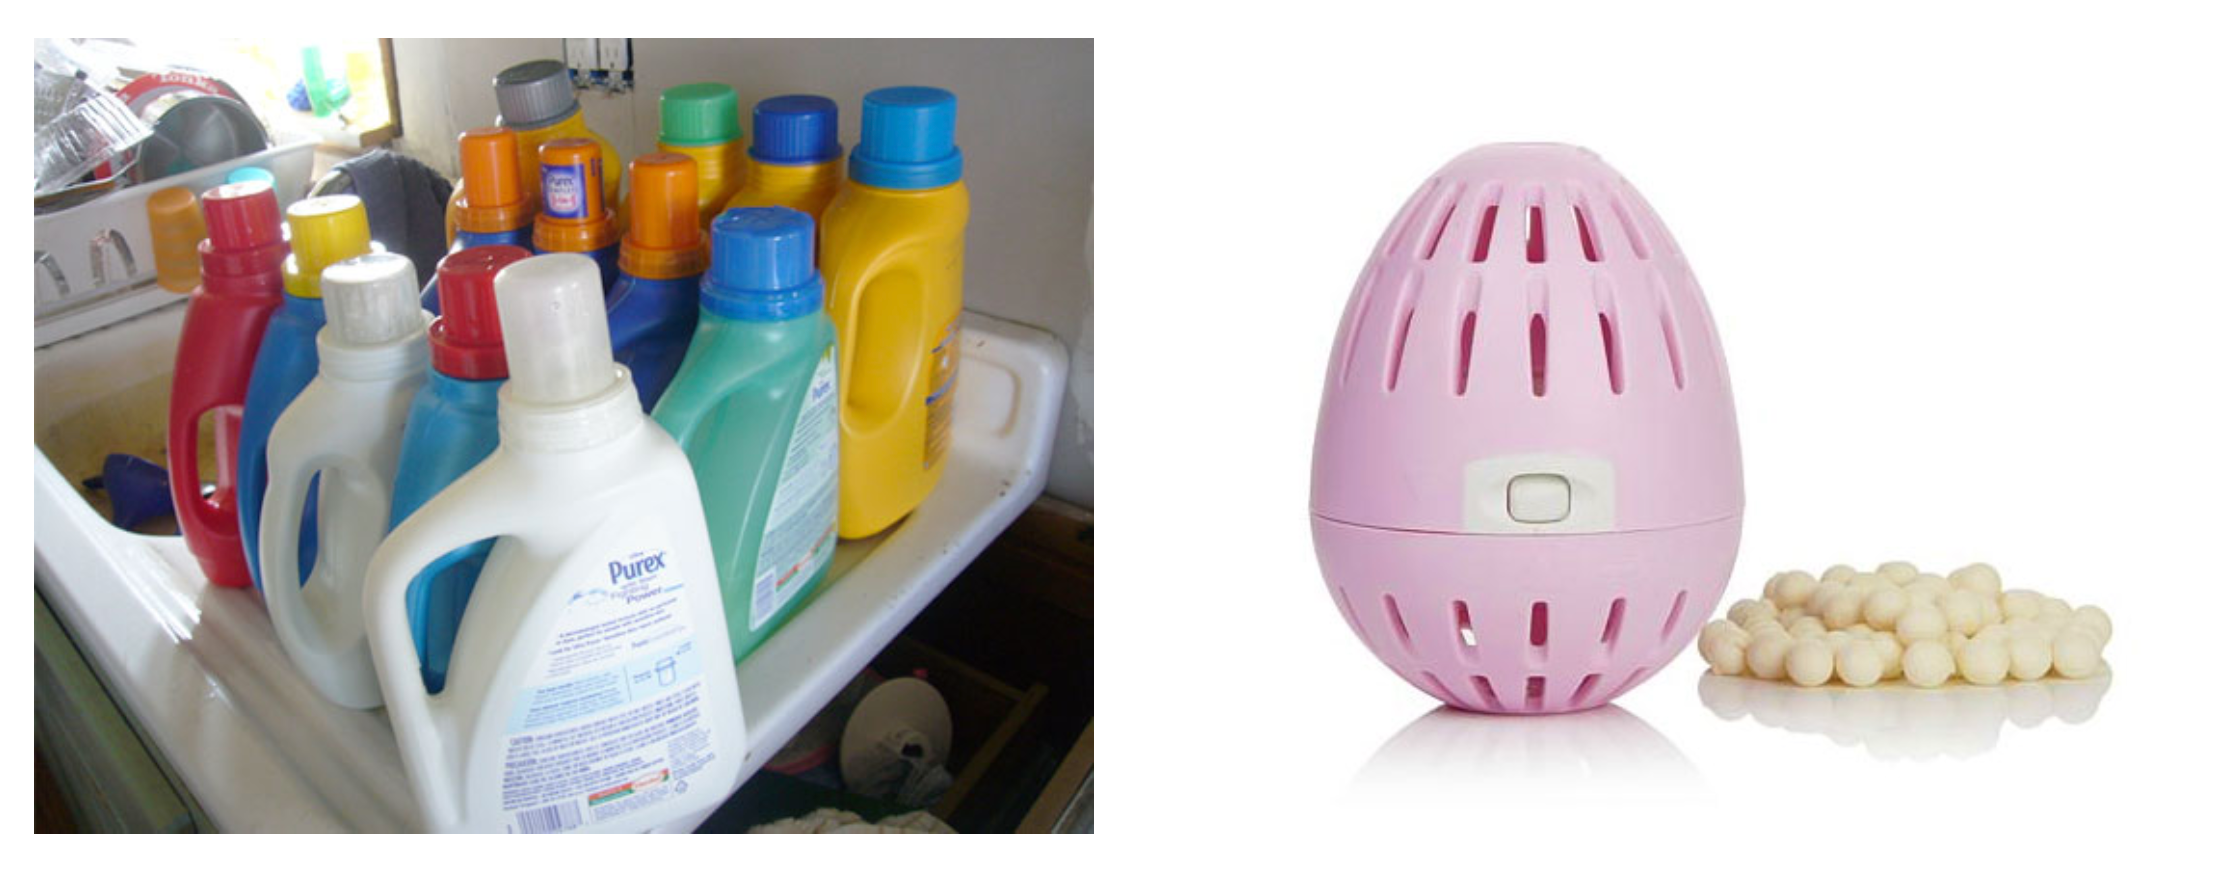 a photo of laundry jugs vs the Ecoegg which replaces laundry detergents